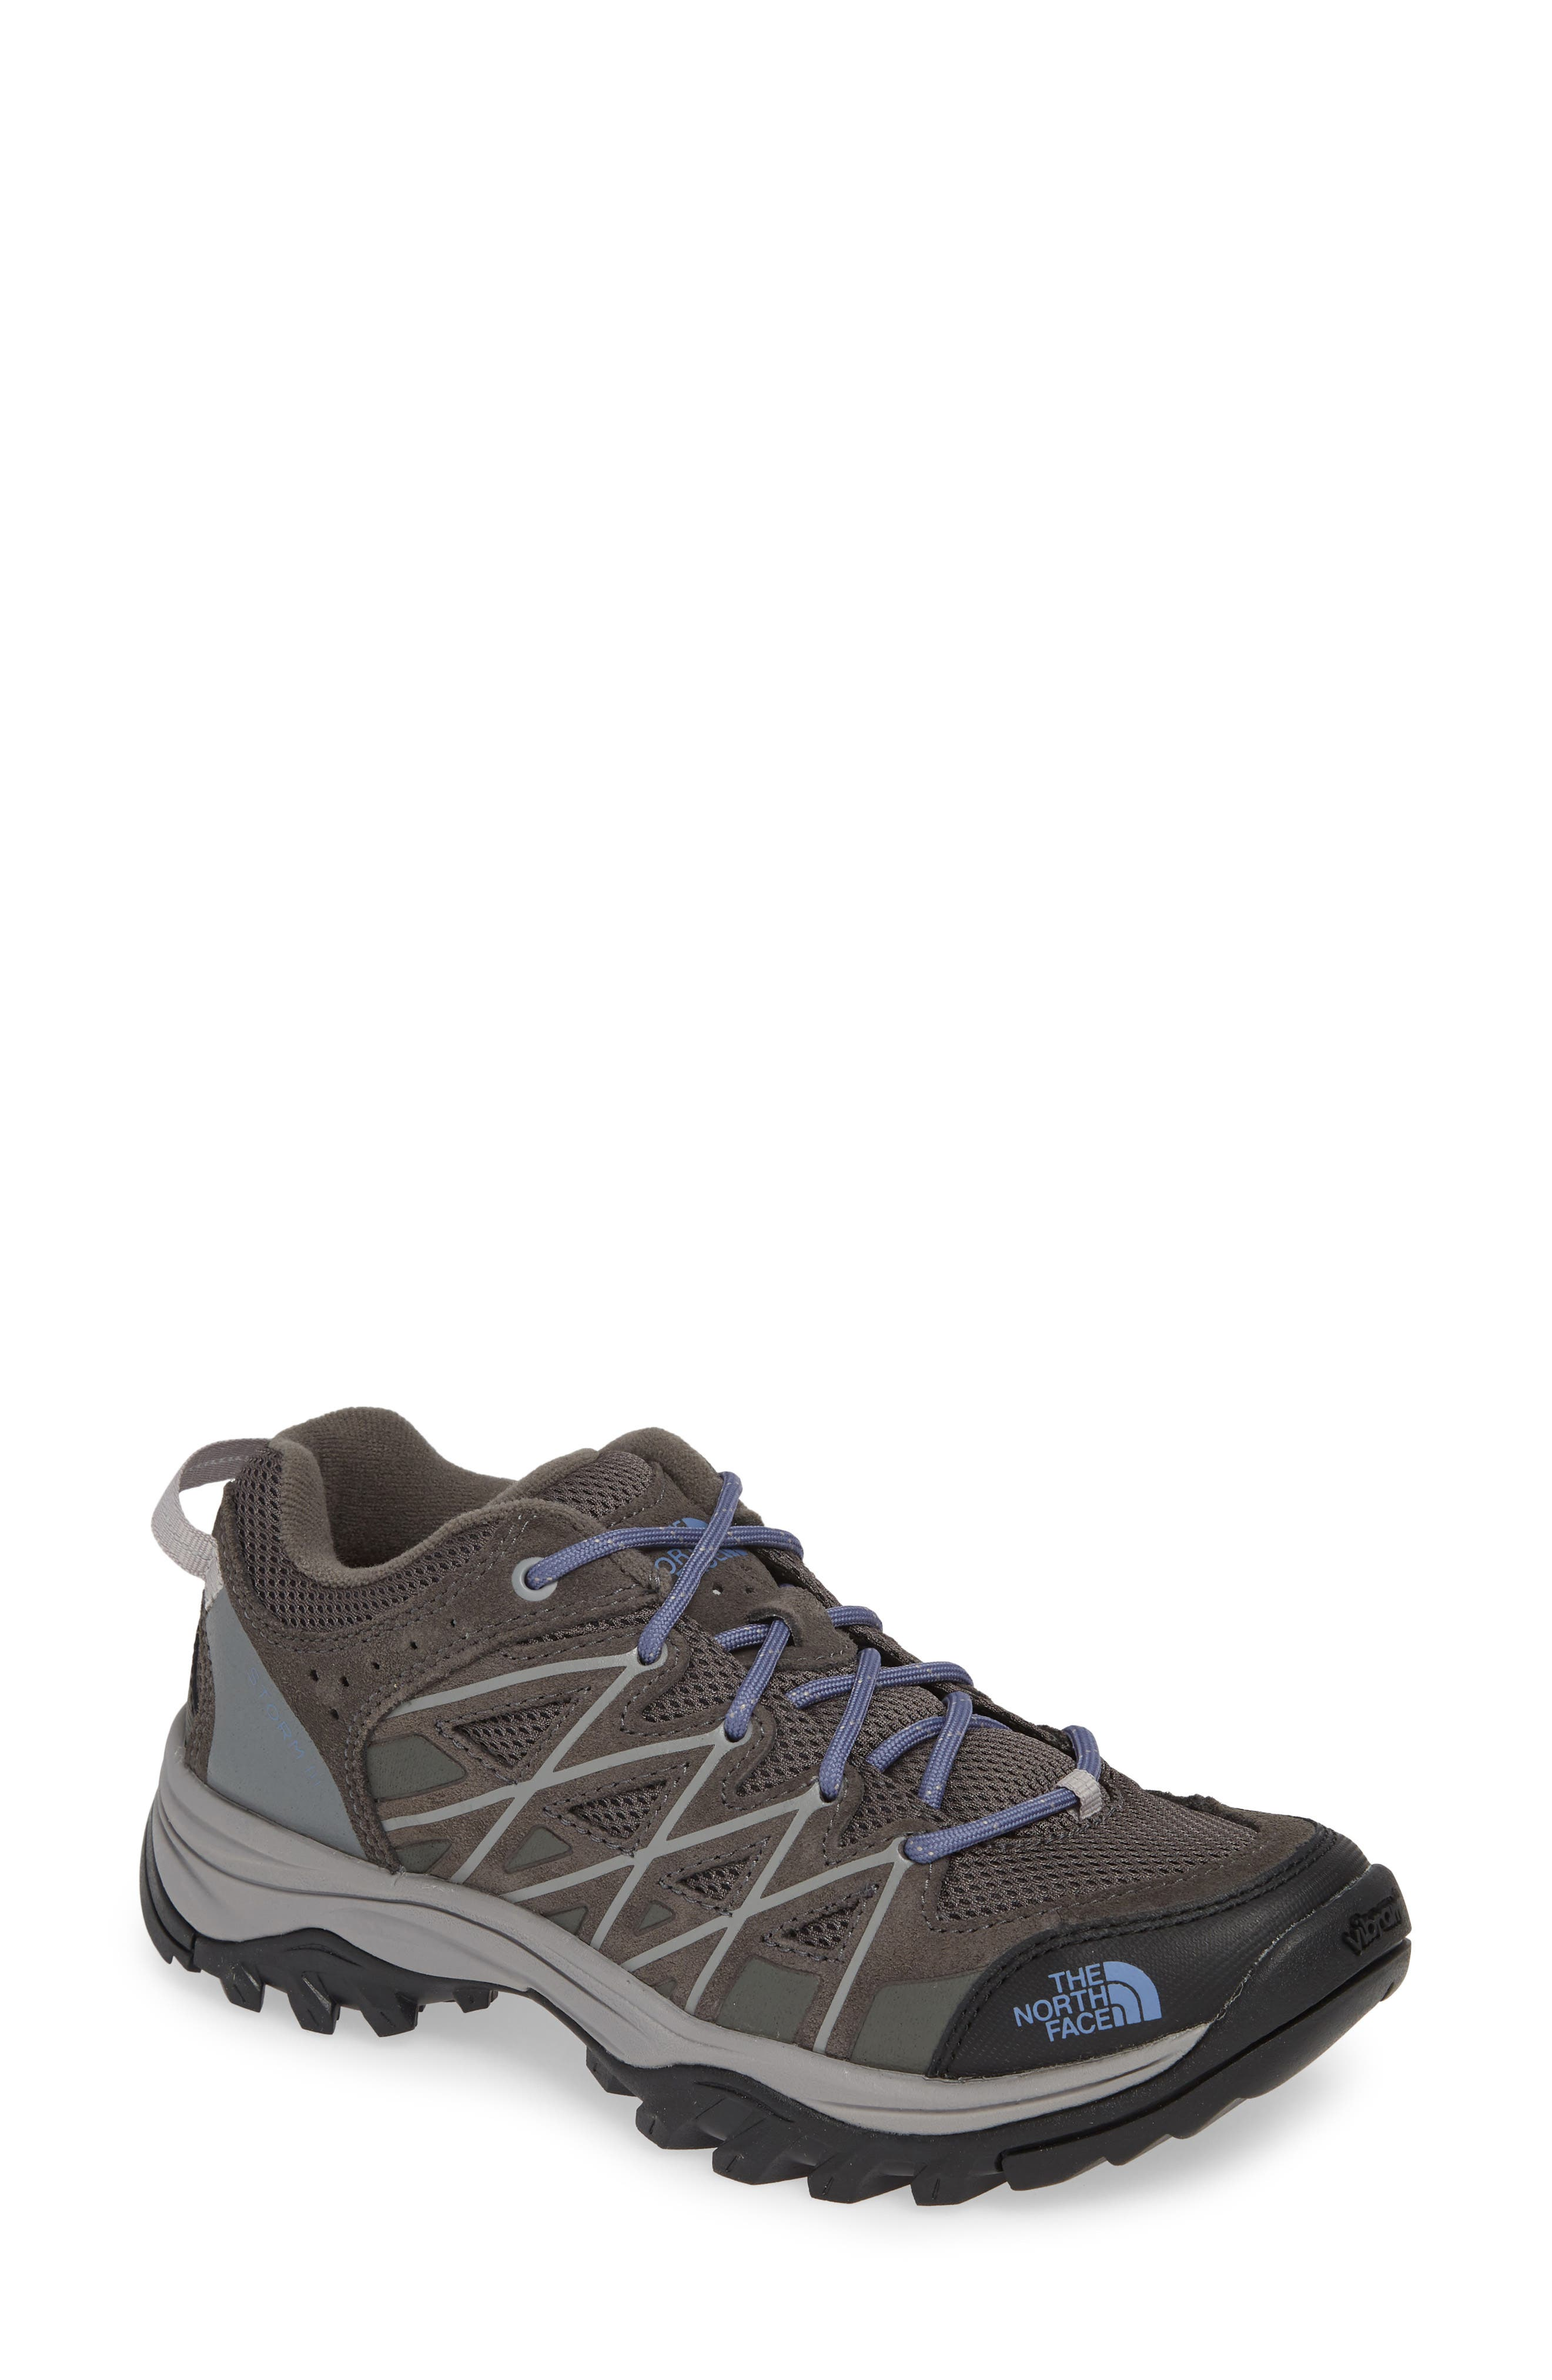 THE NORTH FACE, Storm III Waterproof Hiking Sneaker, Main thumbnail 1, color, DARK GULL GREY/ MARLIN BLUE